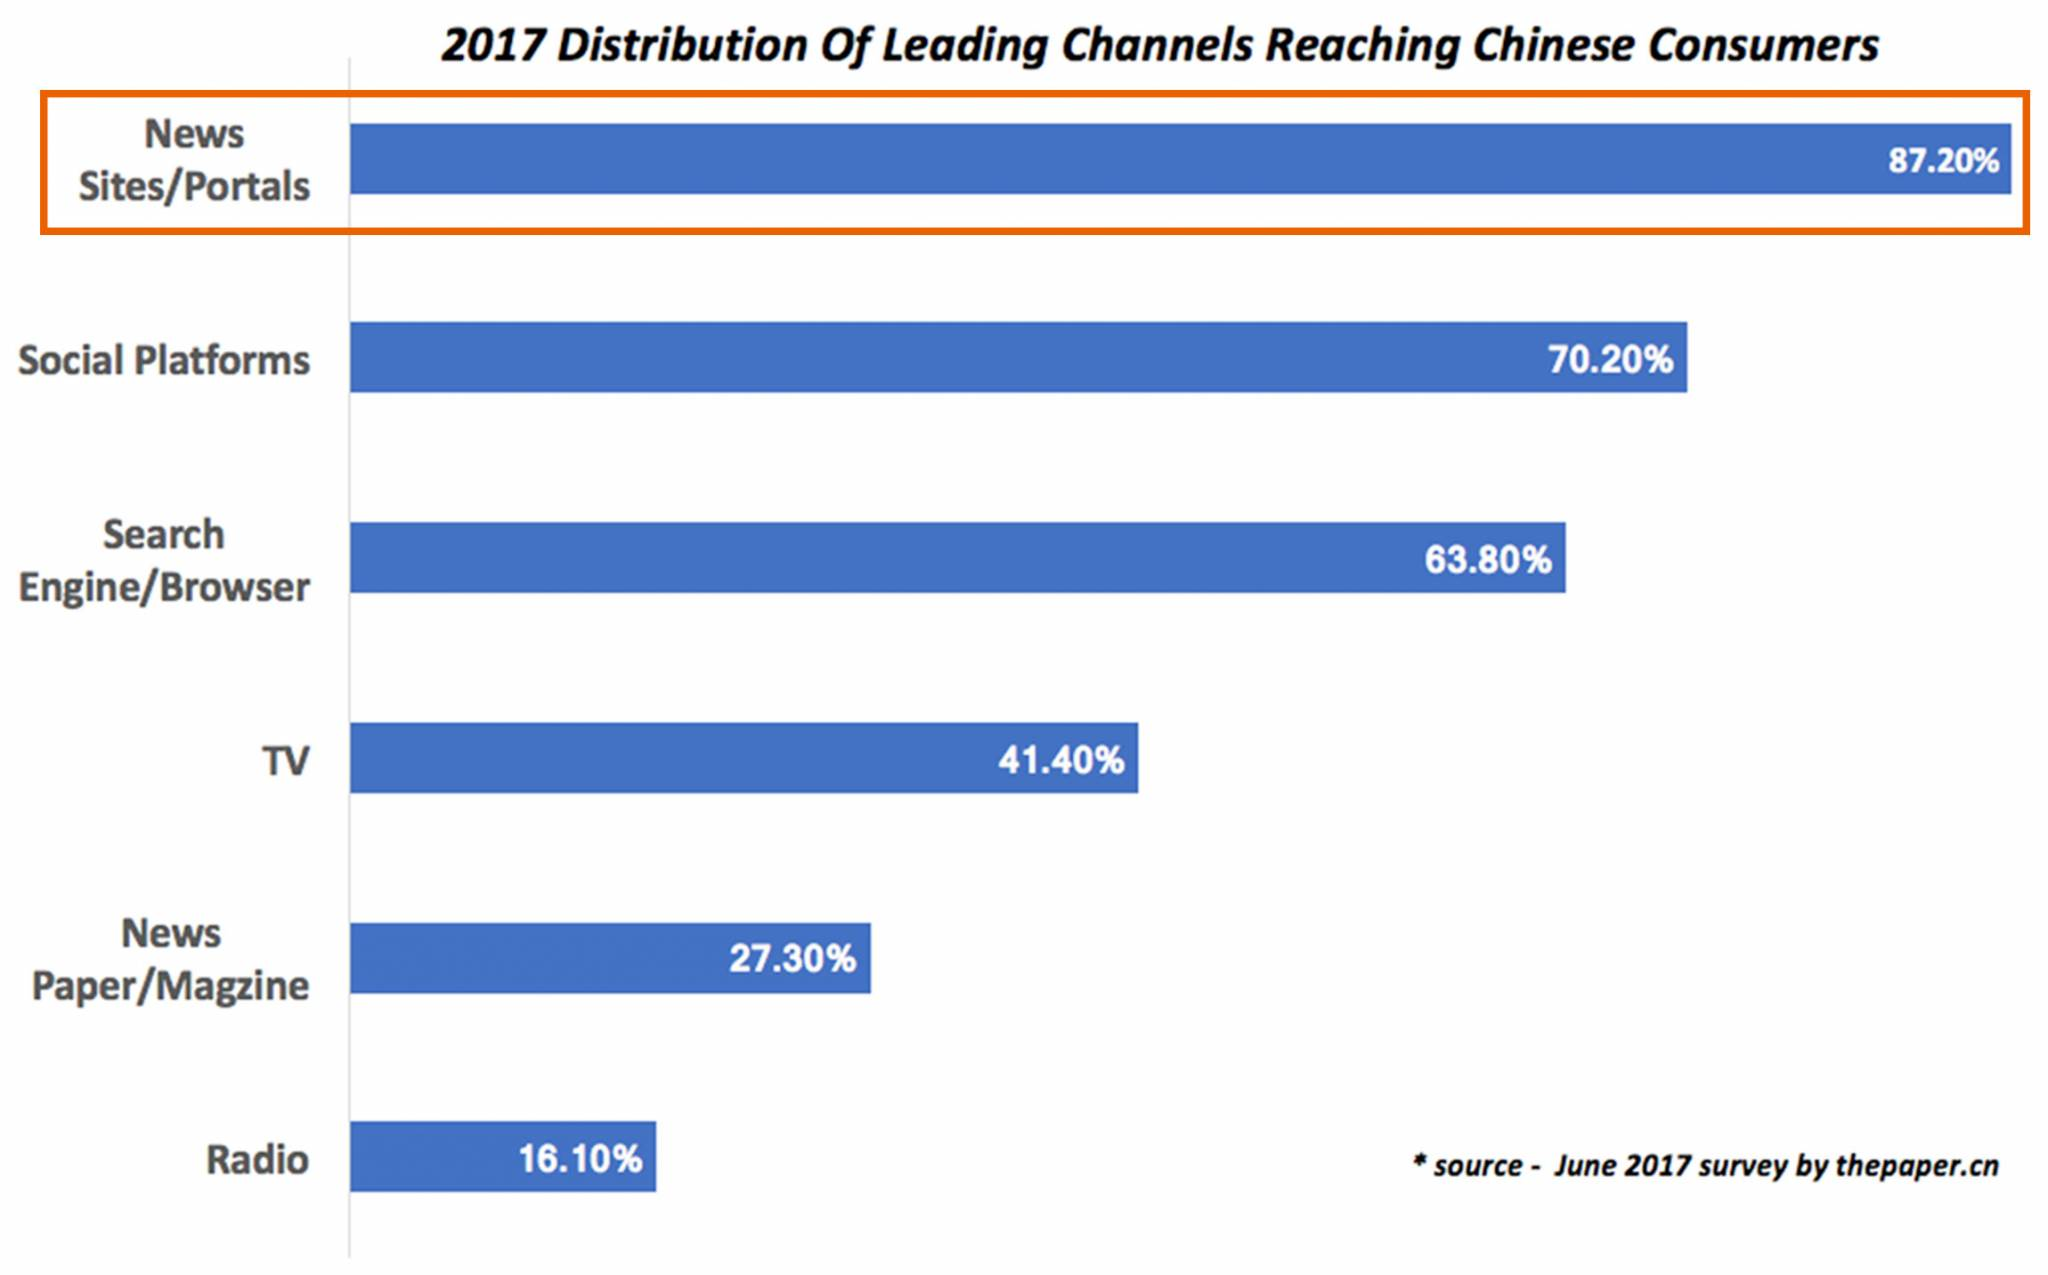 Chinese consumers discover new content via news sites. The best way to advertise in China.